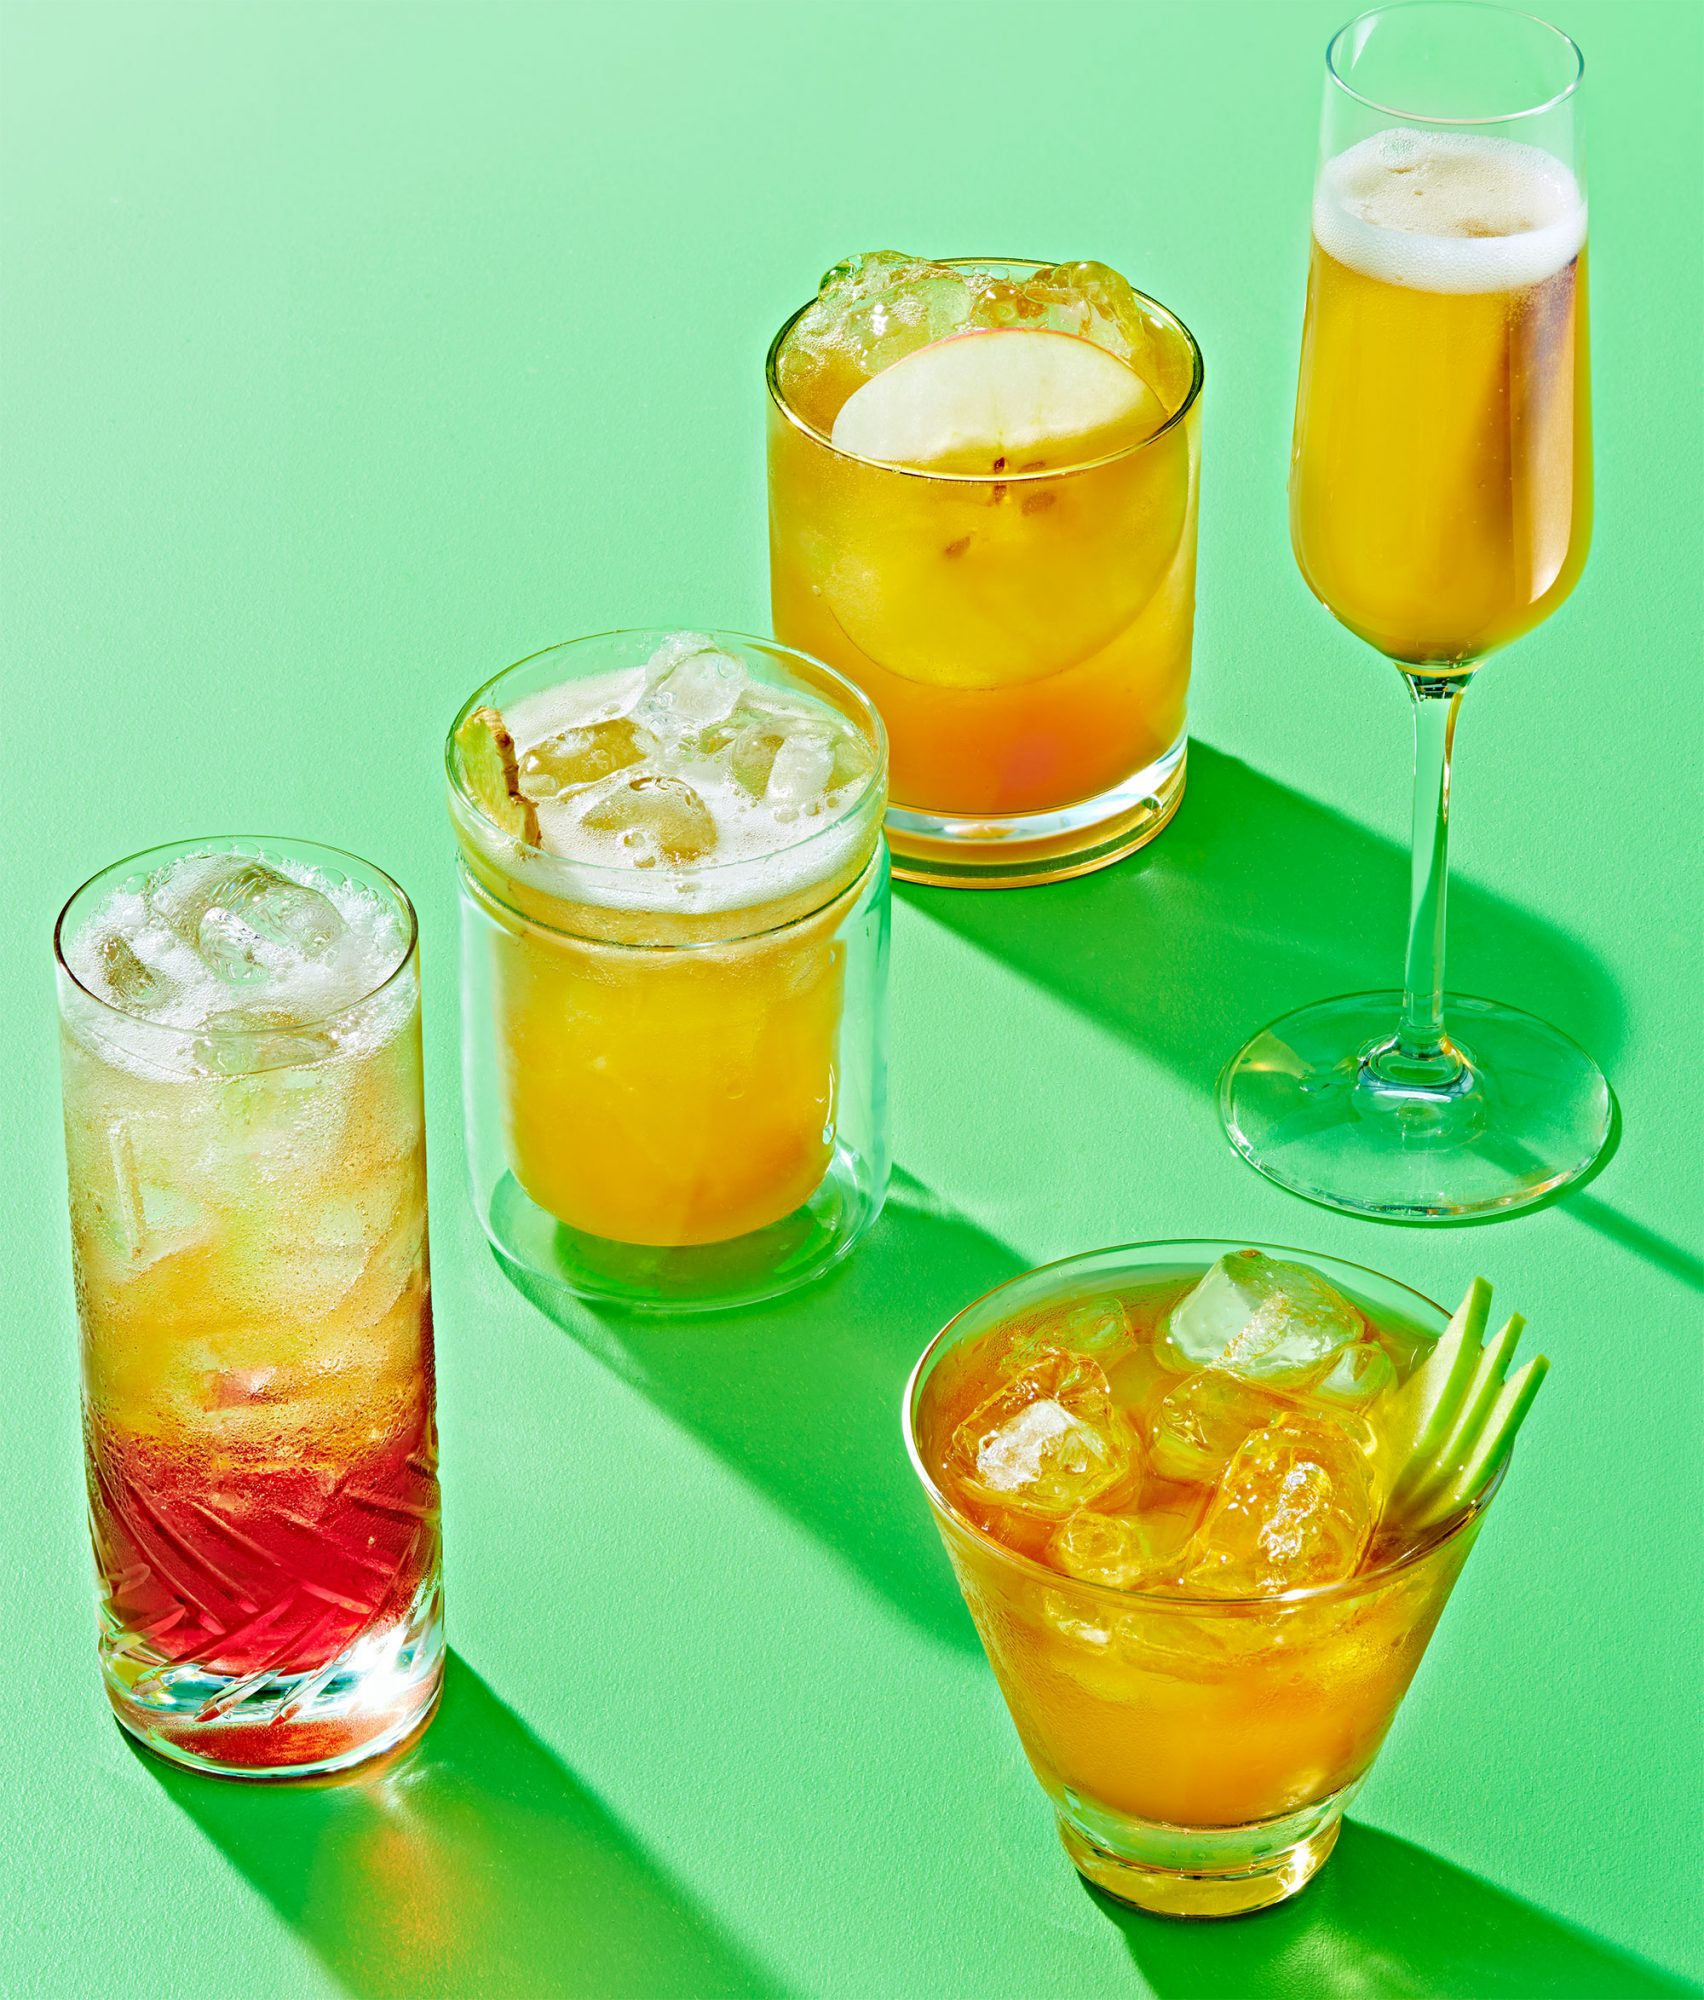 five glasses filled with drinks on a bright green surface